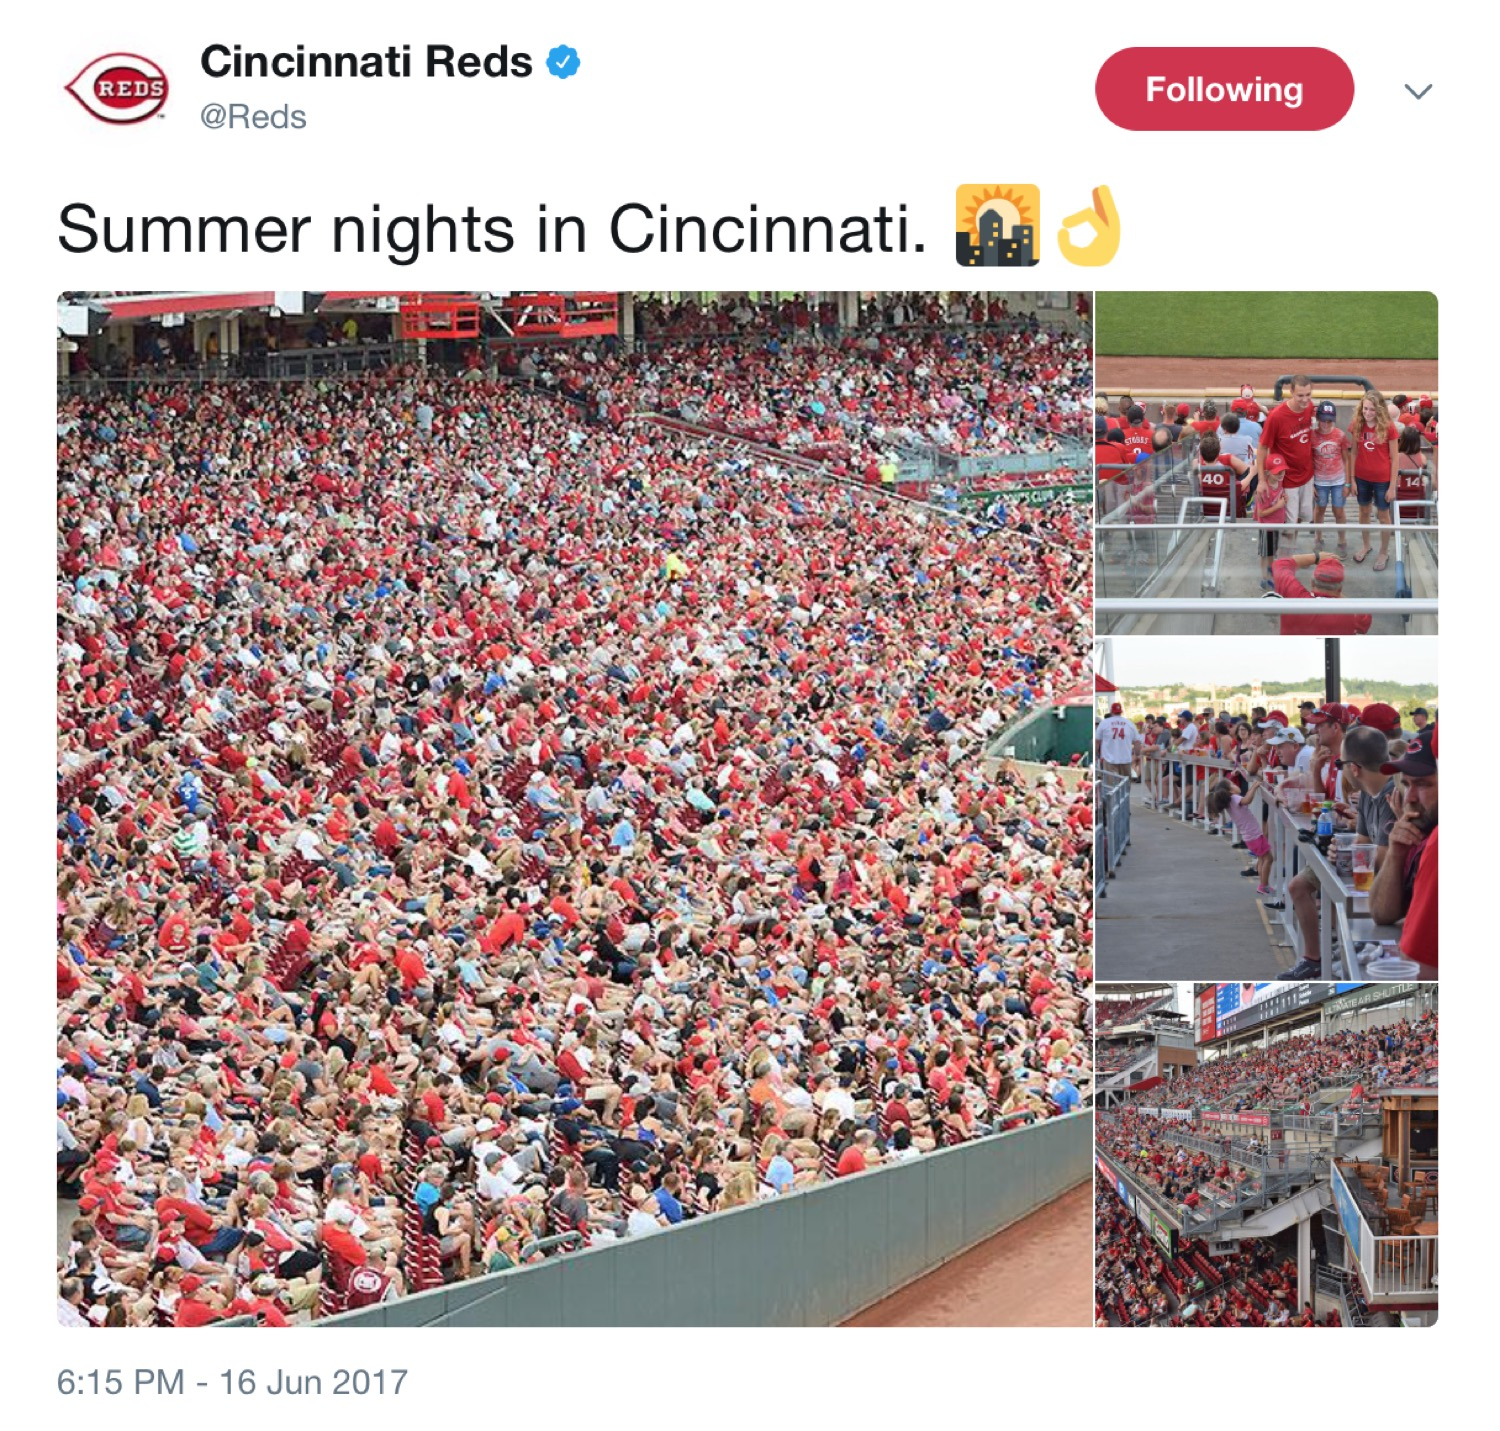 It was an up and down first half of the season for the 2017 Cincinnati Reds. While we all wait for that inevitable second-half run to the World Series, relive some of the best moments of the year so far. / Image courtesy of the Cincinnati Reds // Published: 7.25.17